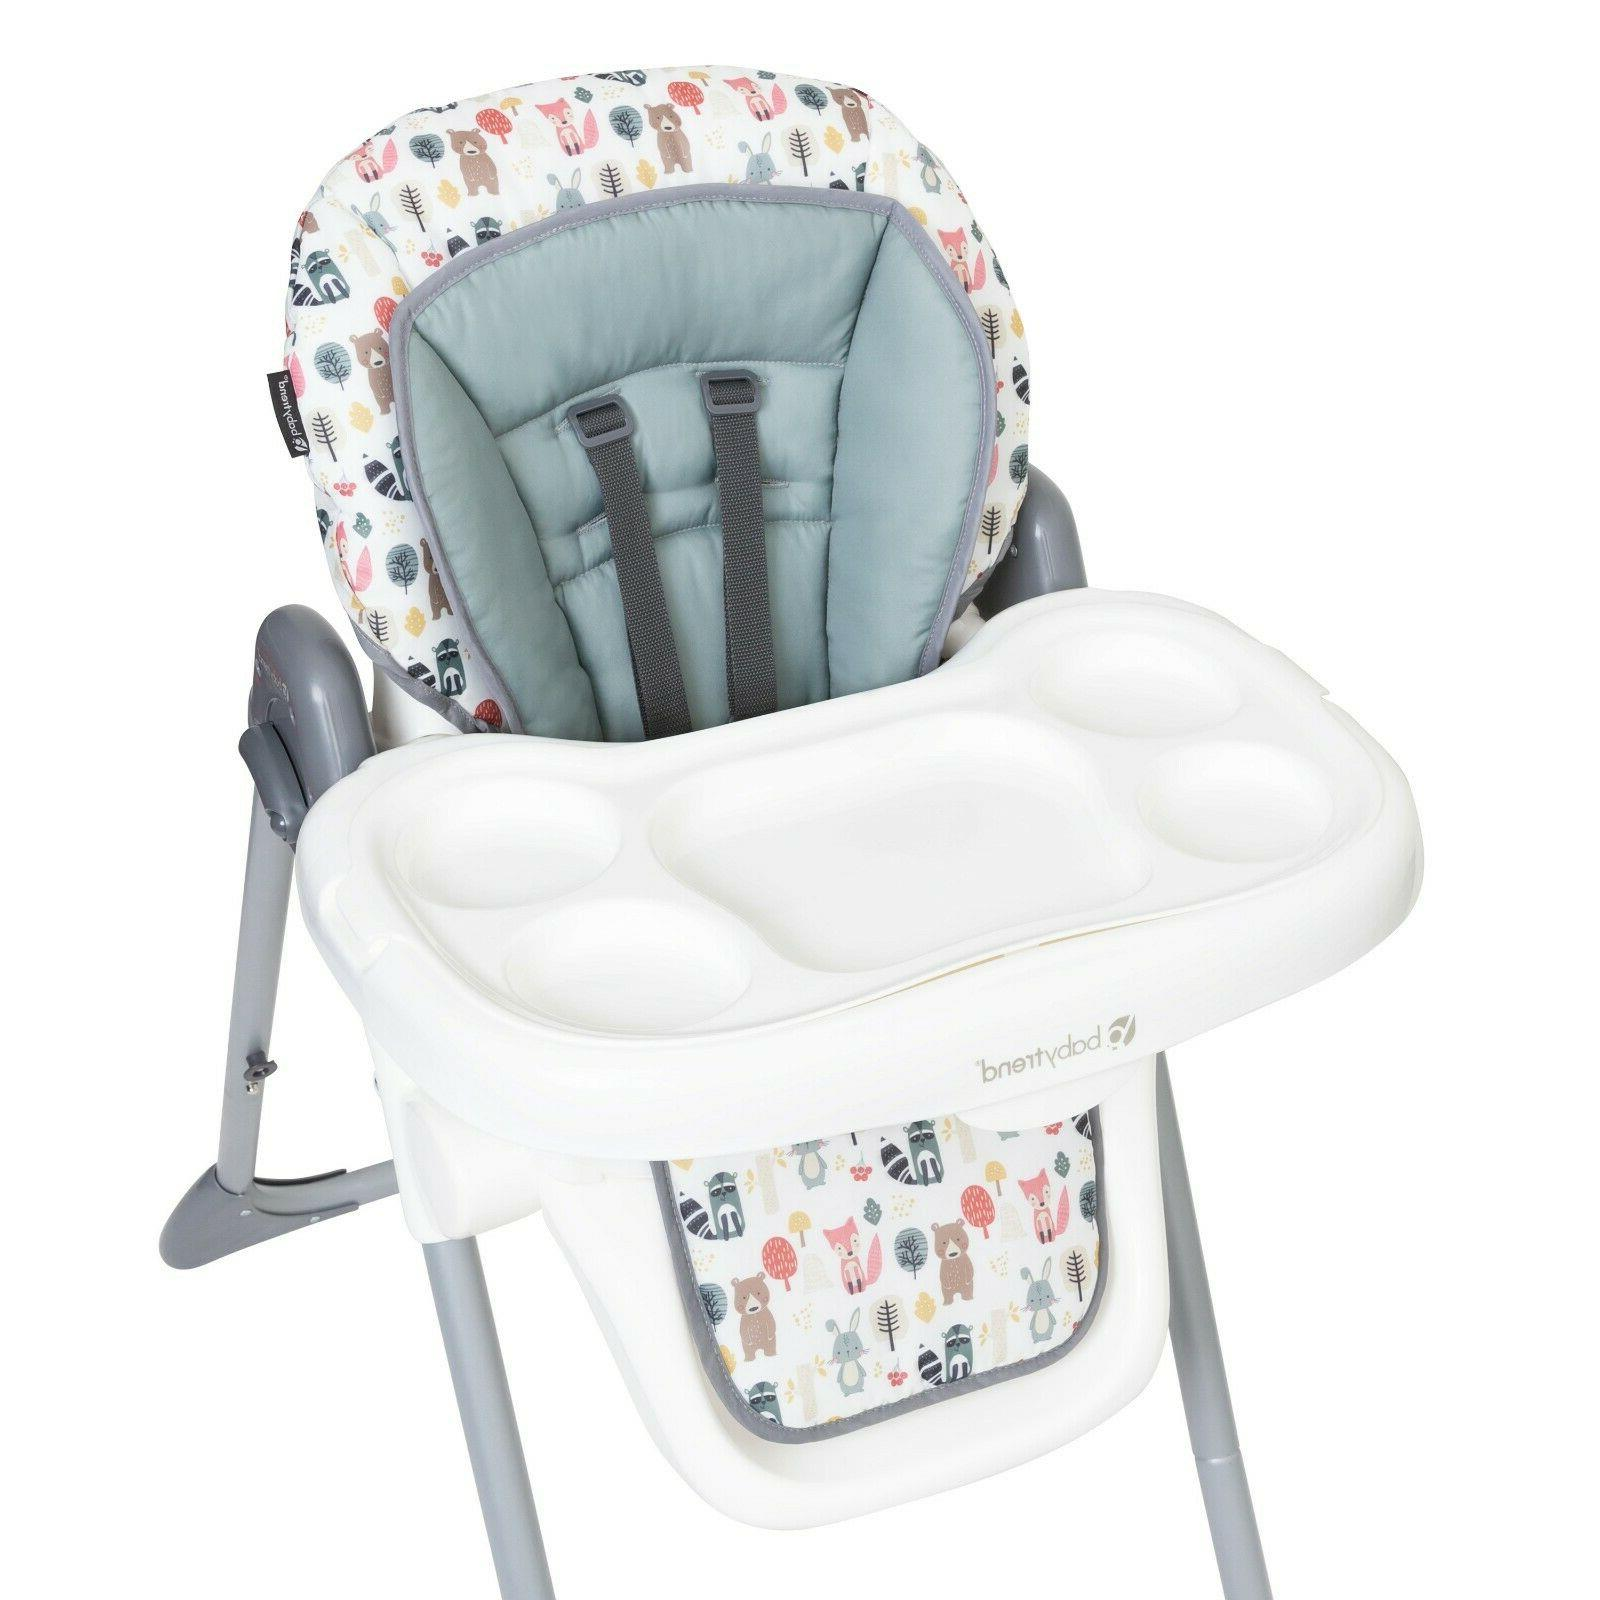 Baby Adjustable Height Mealtime Foldable